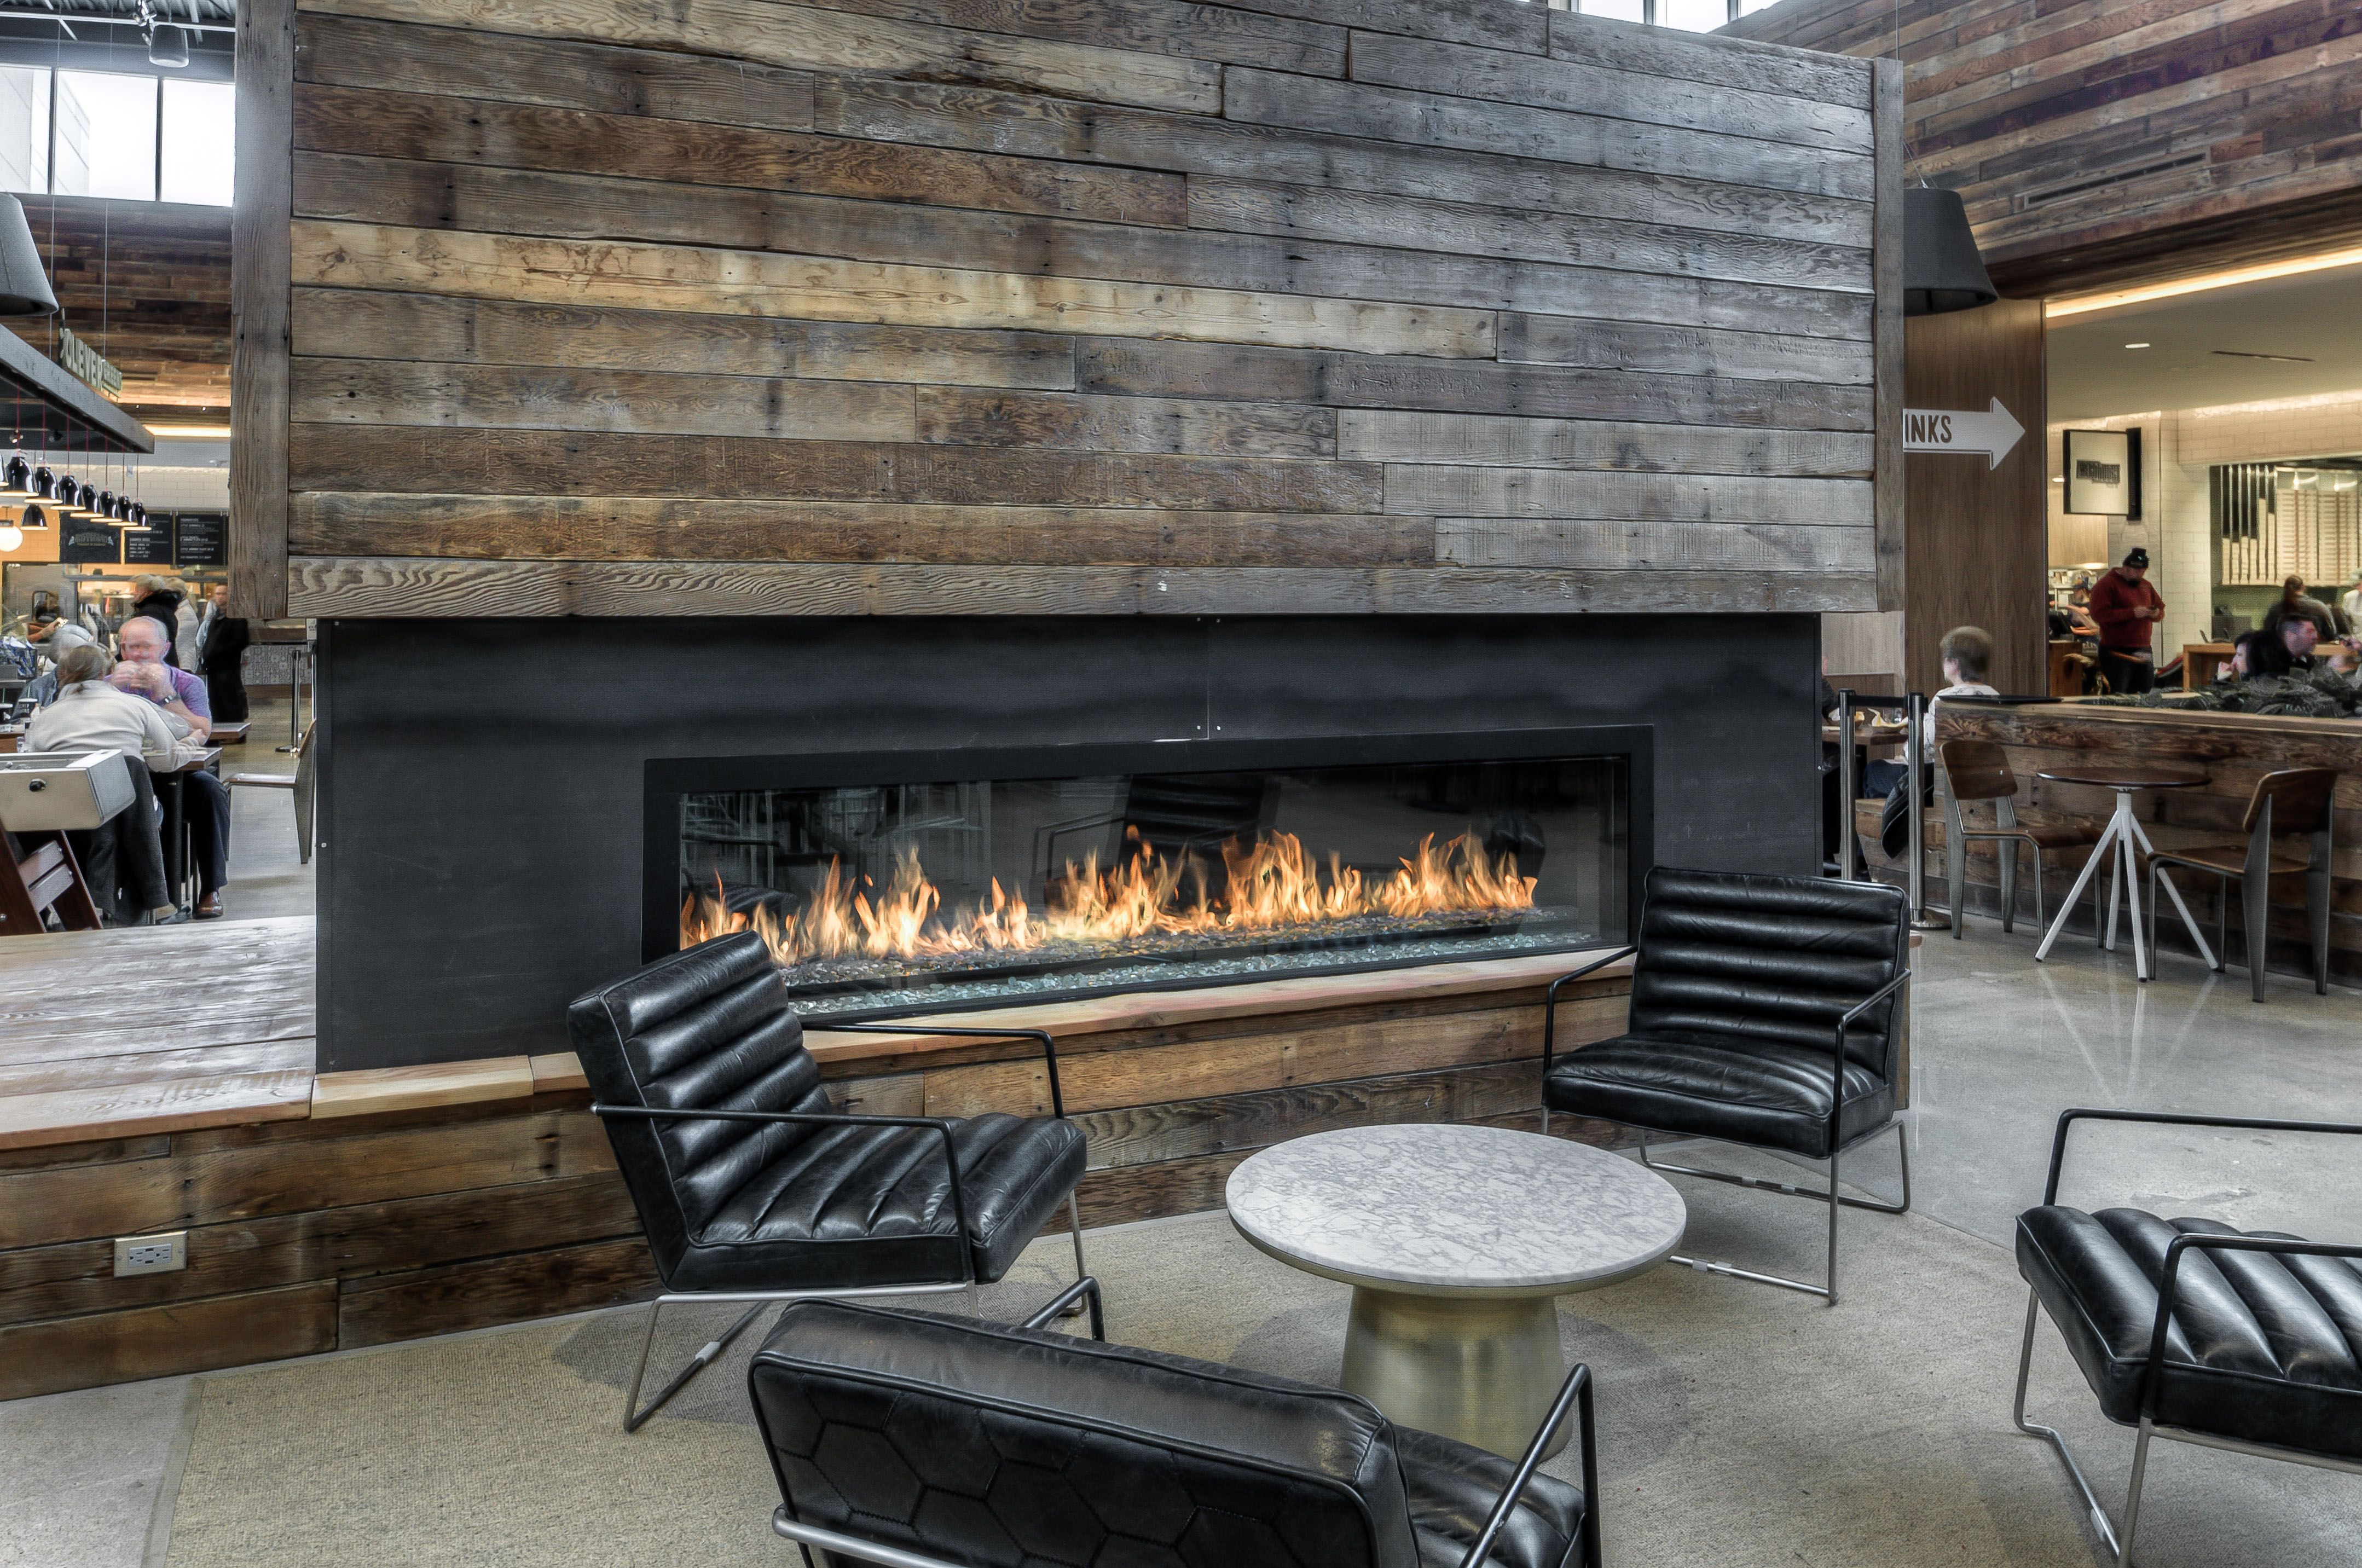 Pin By Fireplace Stone Patio On Modern Fireplaces Linear Fireplaces And Inserts With Images Linear Fireplace Fireplace Modern Fireplace